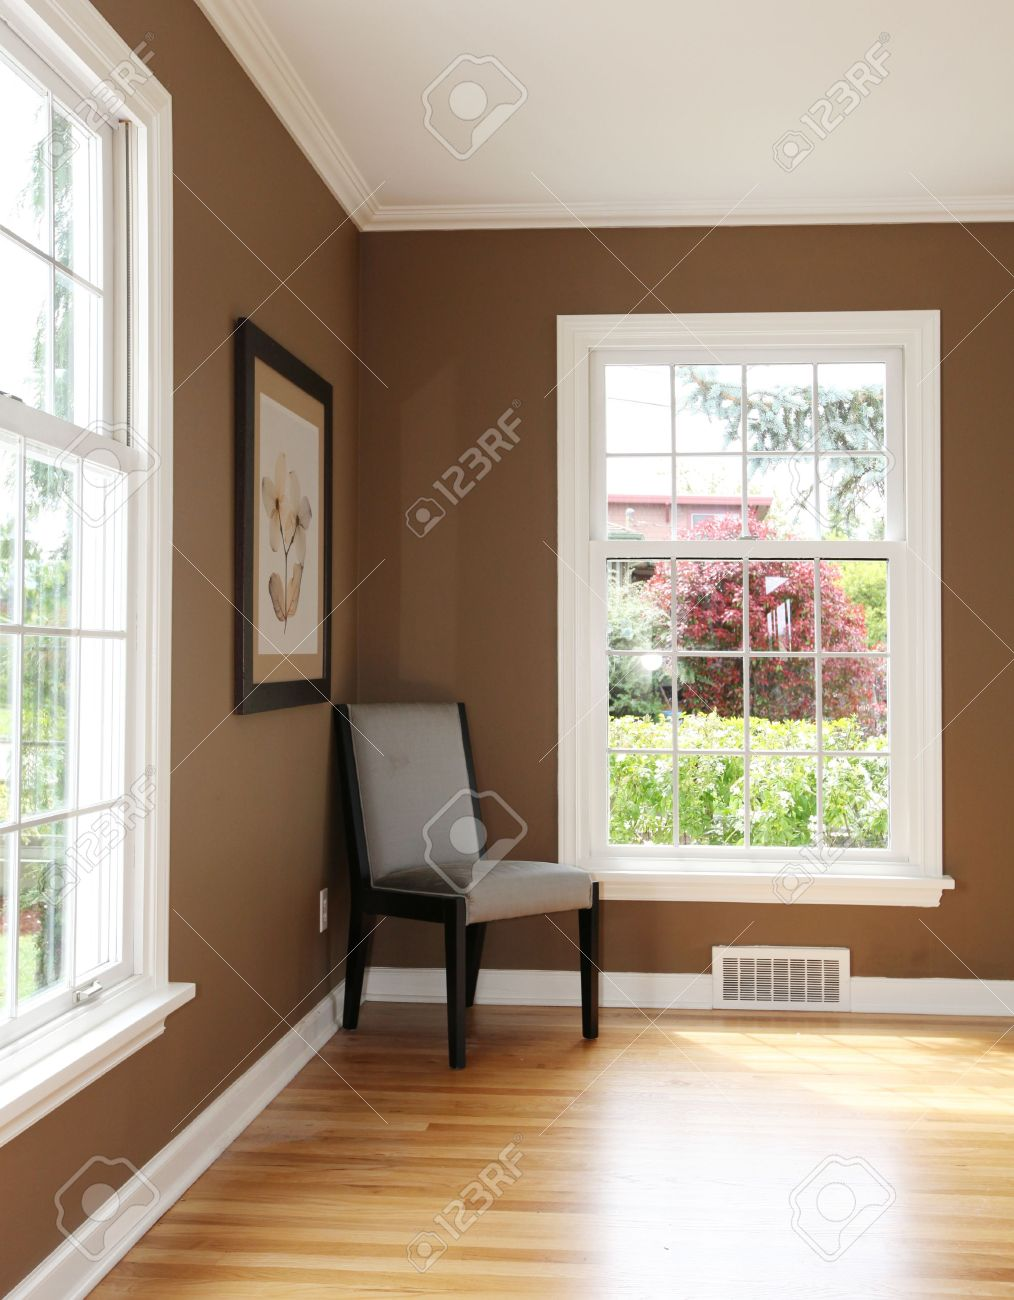 Living room corner with chair and two windows and hardwood floor. Stock Photo - 13888940